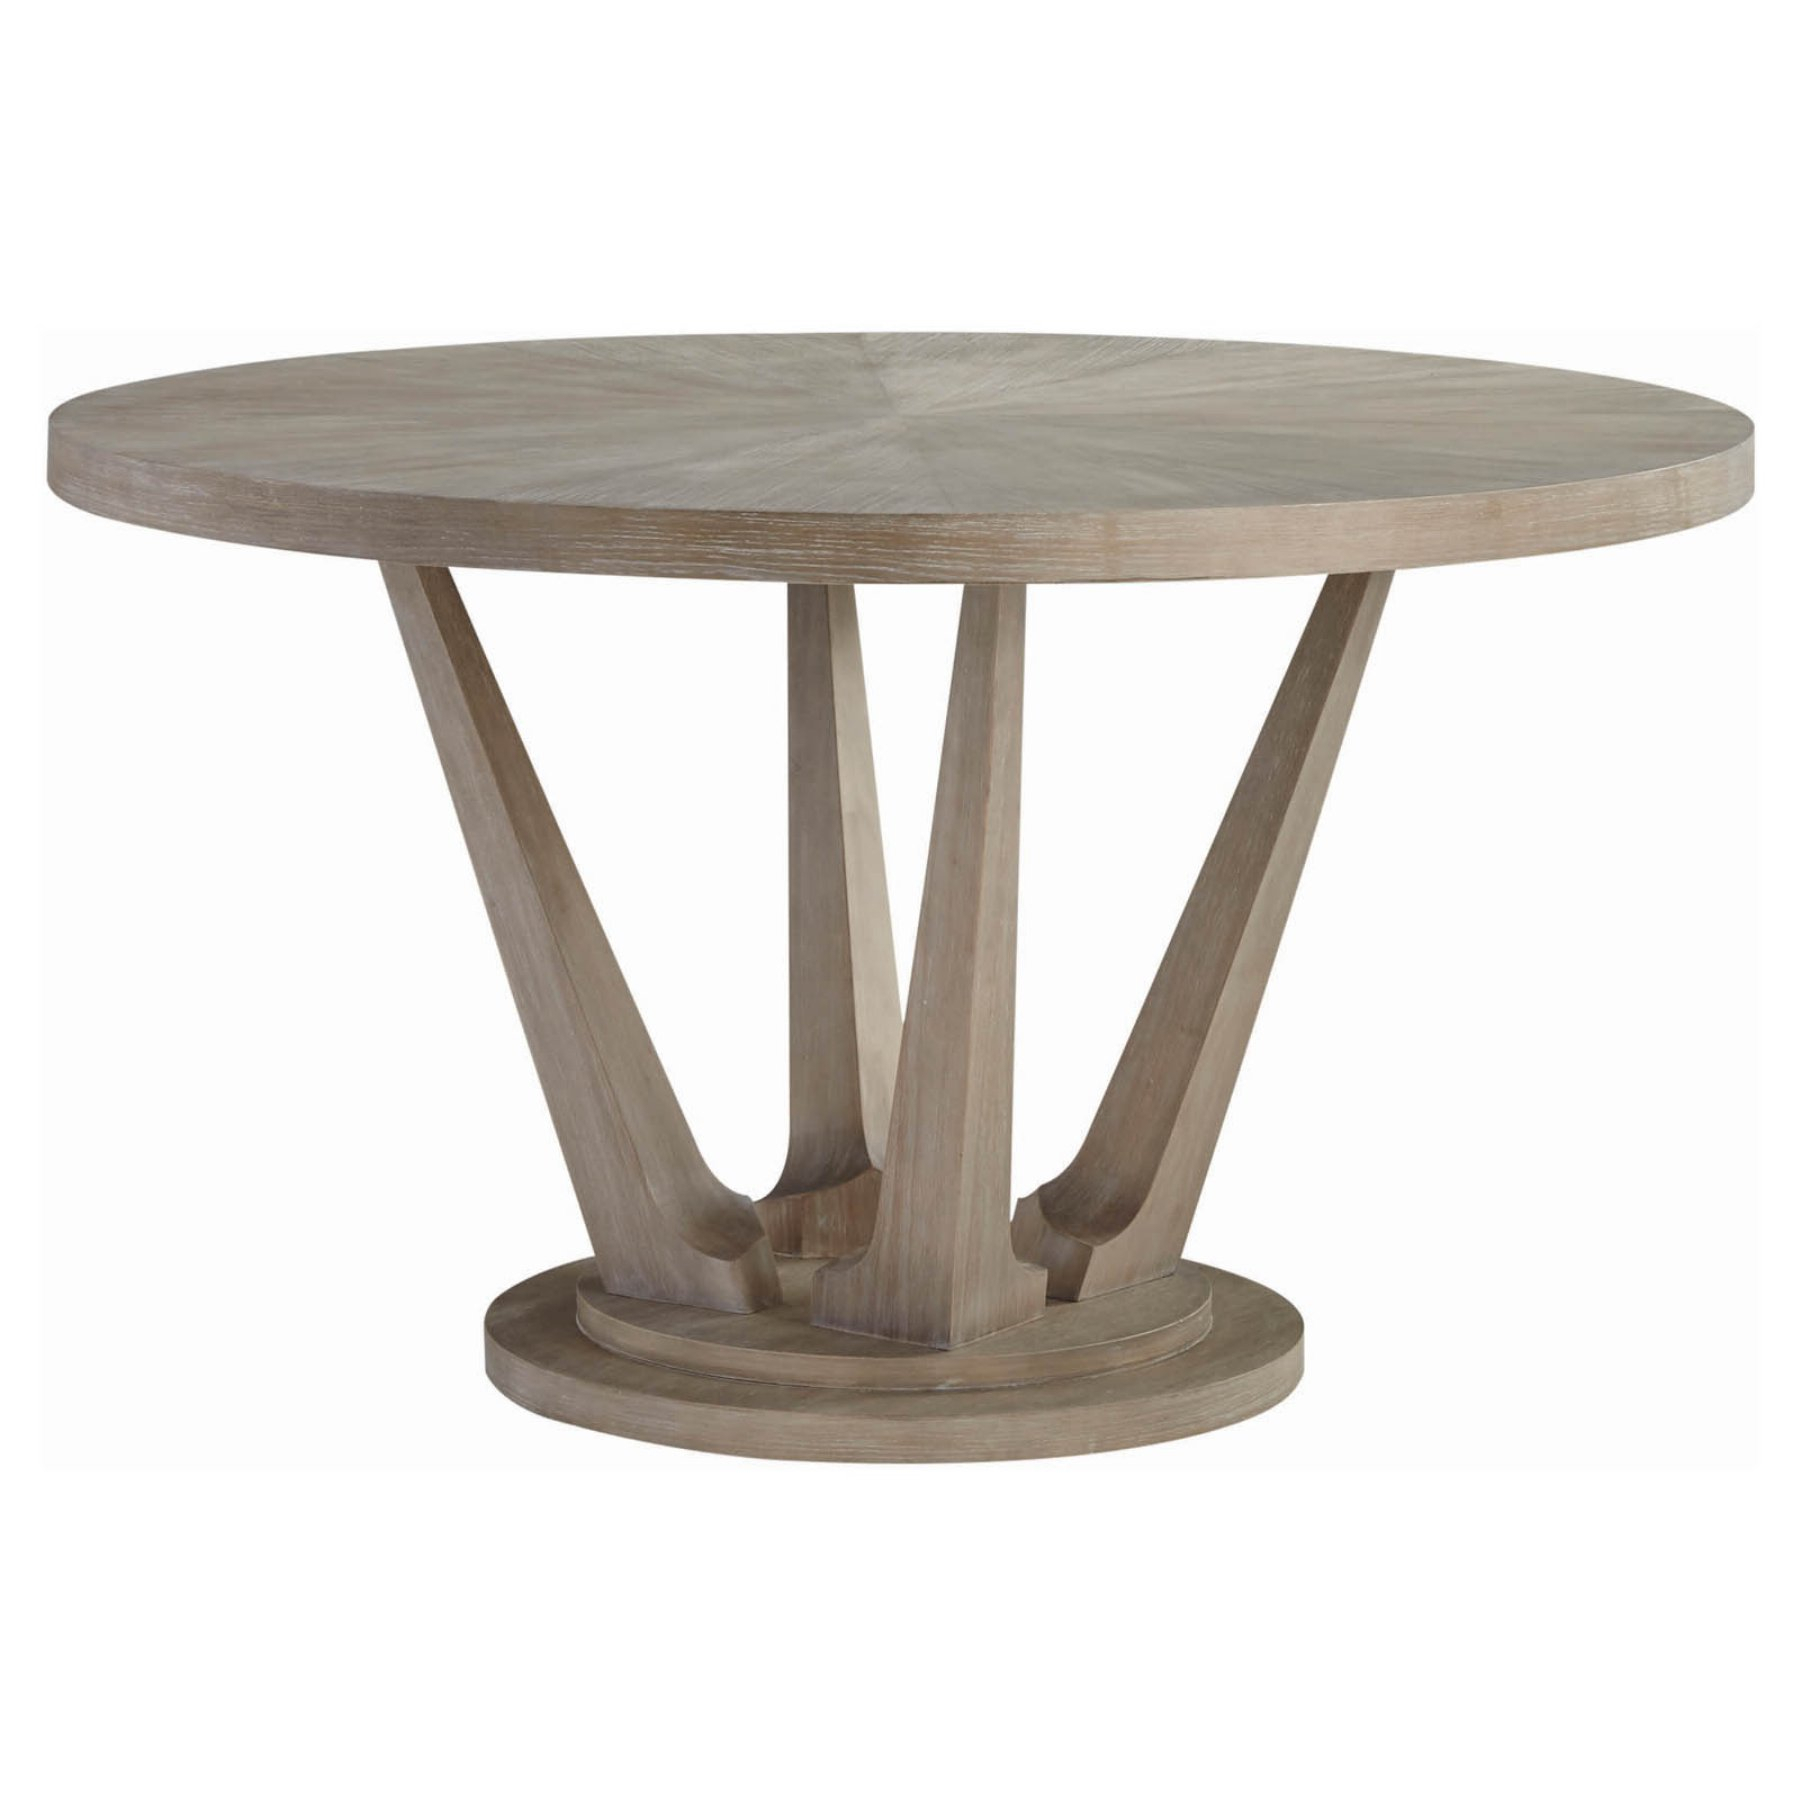 Palliser Alexandra Round Dining Table | Products In 2019 Throughout 2018 Alexandra Round Marble Pedestal Dining Tables (Image 18 of 25)